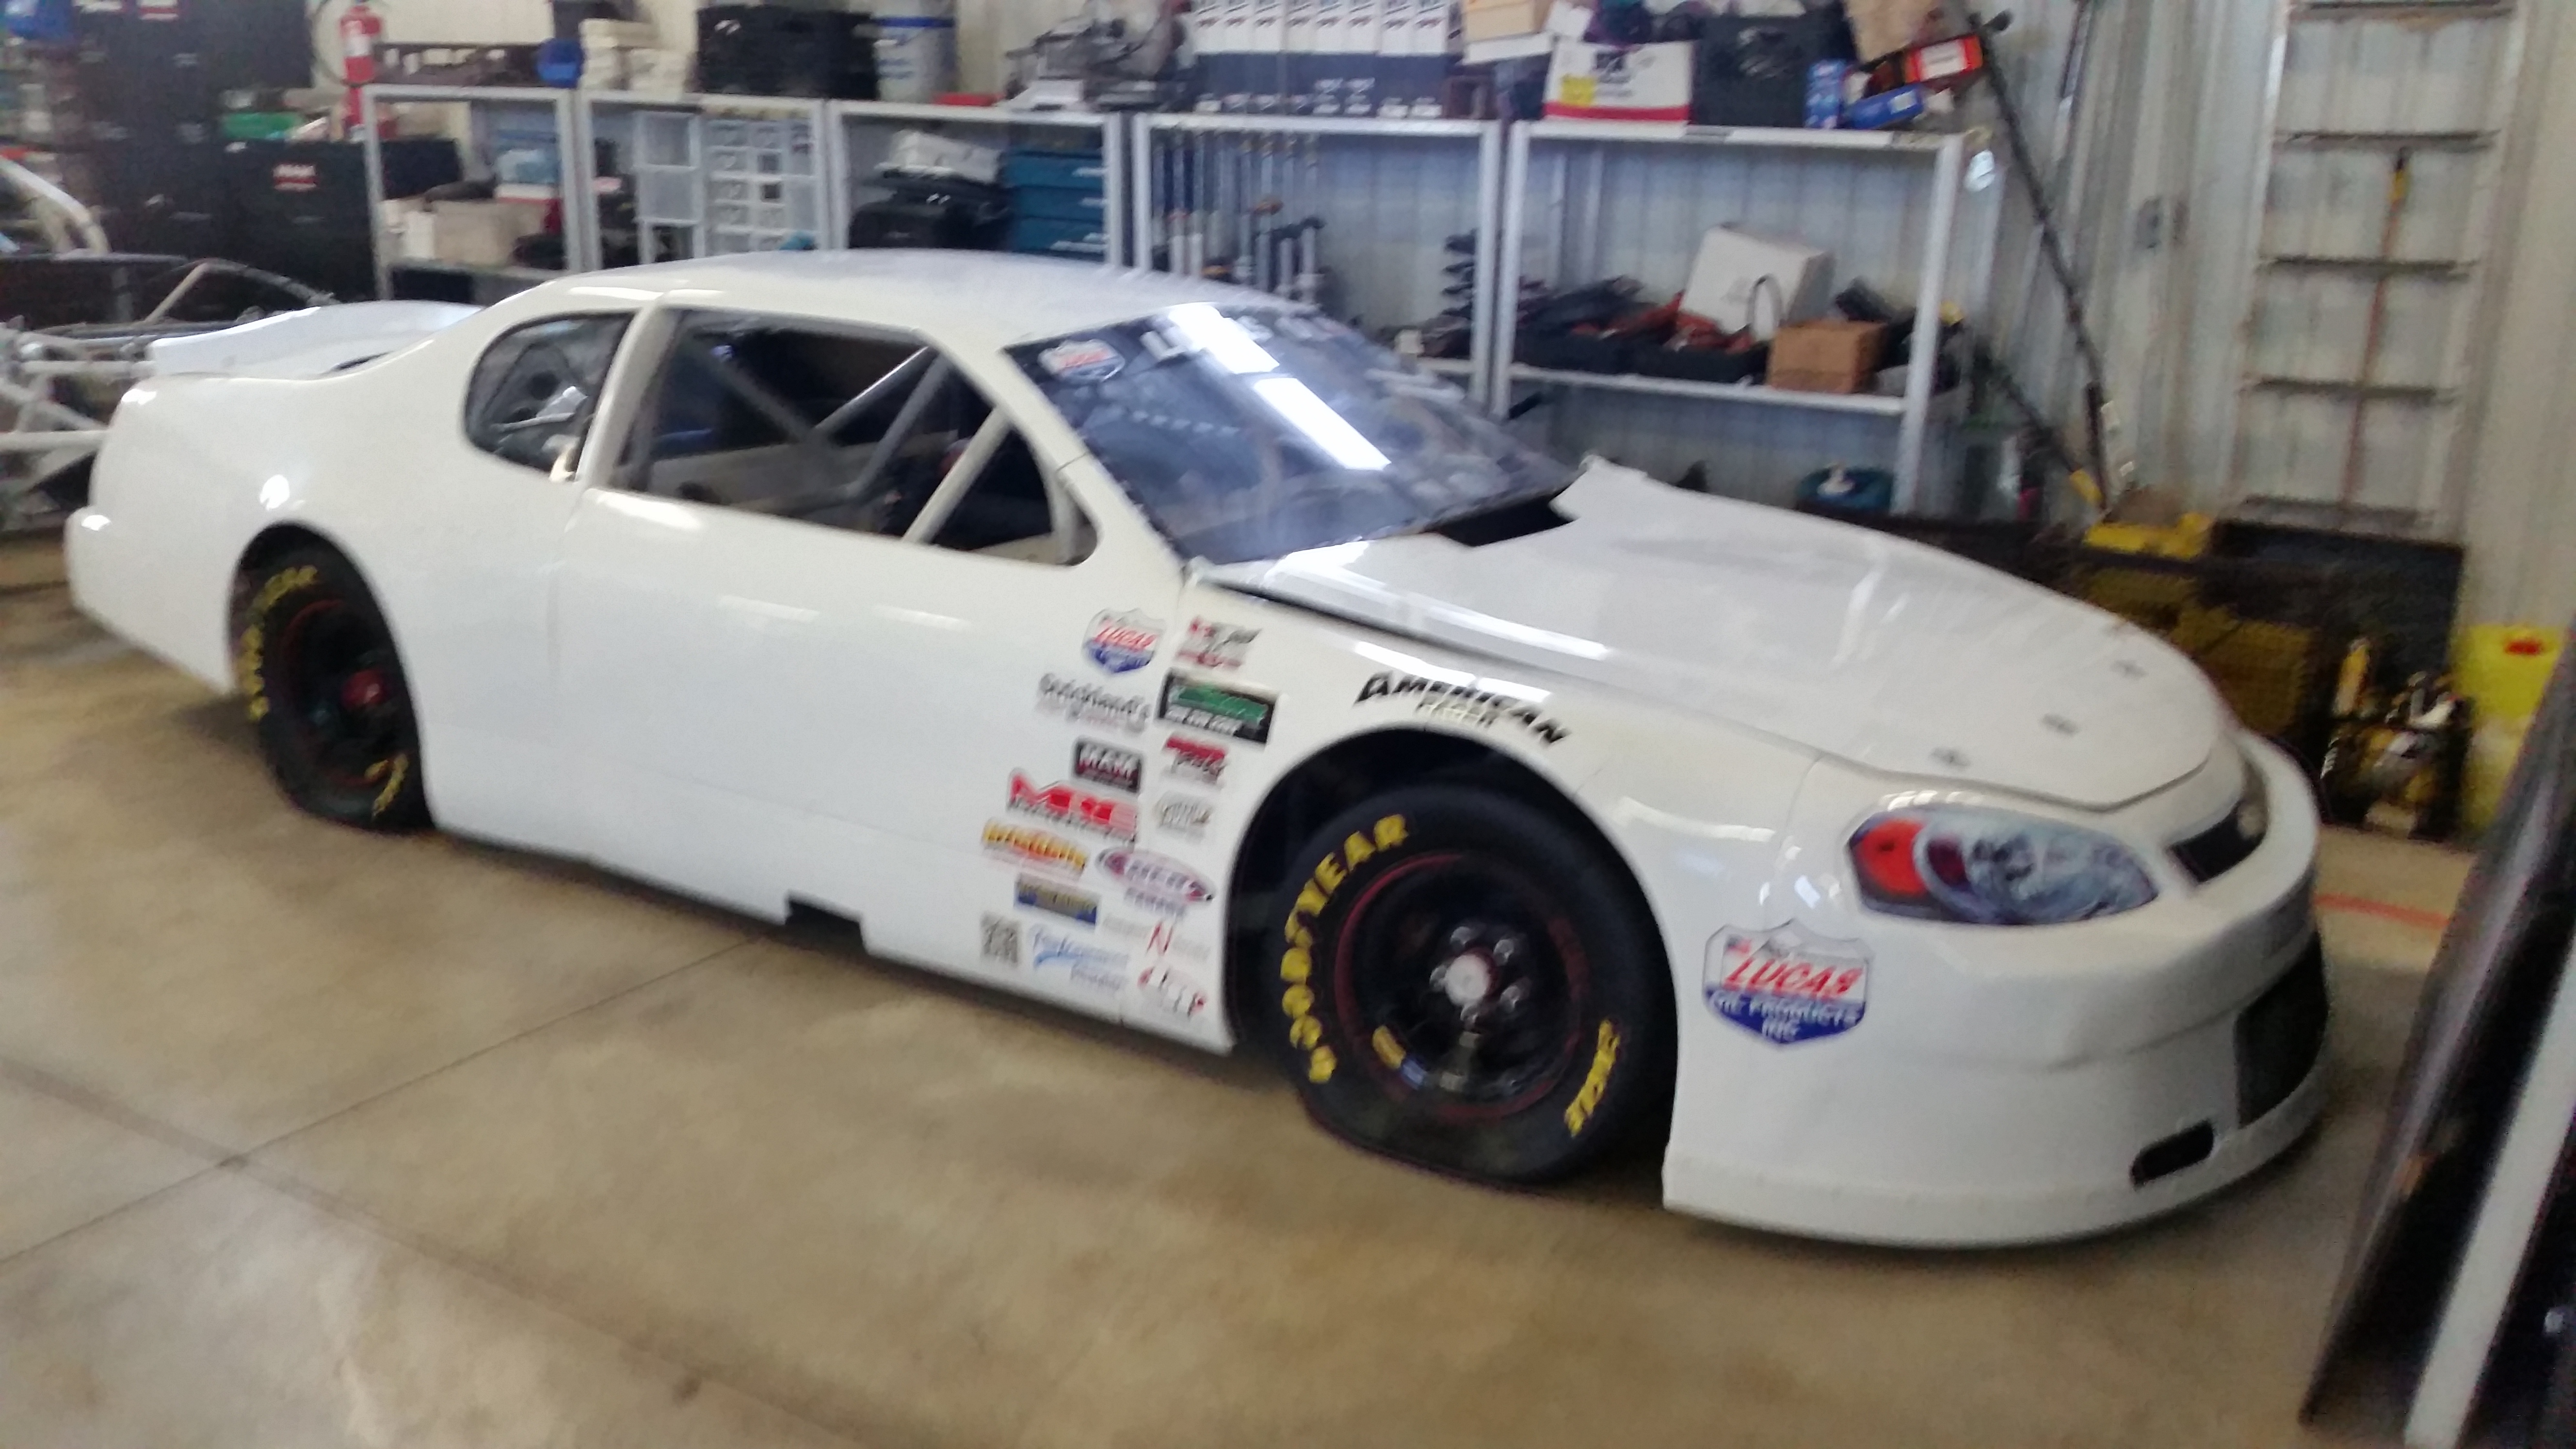 Cars For Sale In Iowa >> LOSC, Nascar, SCCA, Road Corse Car, Oval Stock Car For Sale in Caledonia - $7500